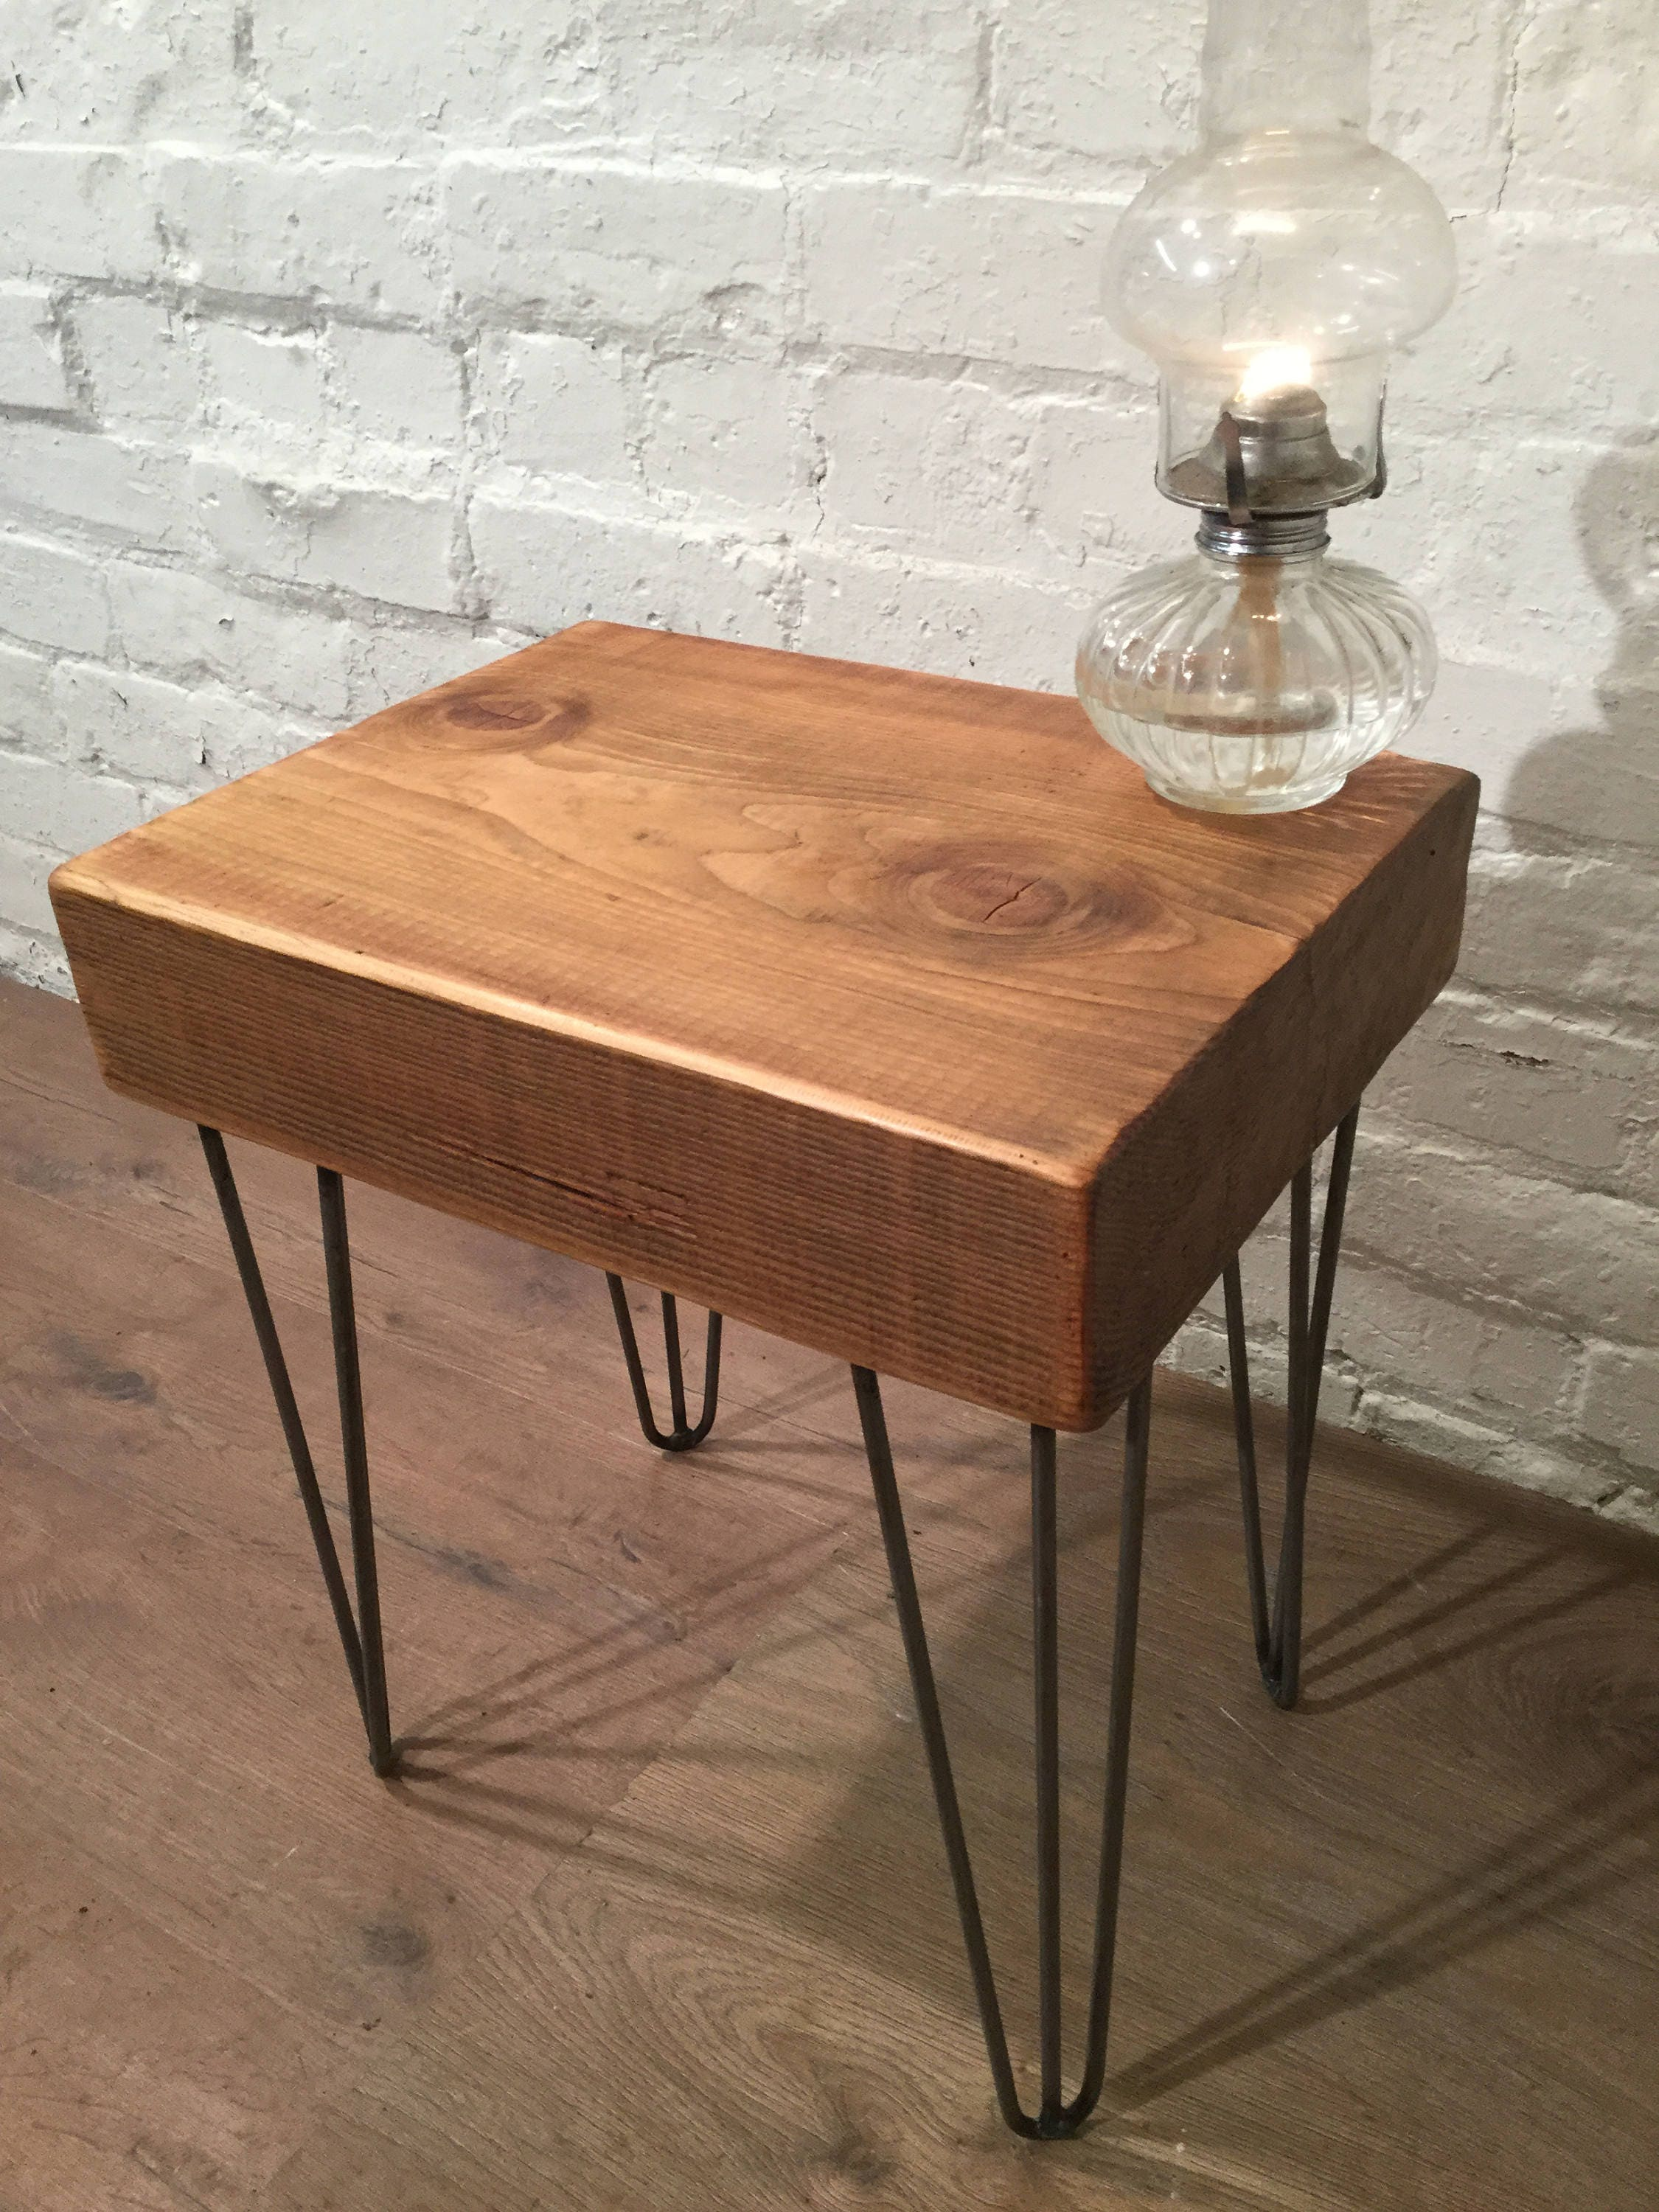 Douglas Fir Cube Block On HairPin Legs Reclaimed Vintage Solid Wood Compact  Coffee Table   Only This One!   Village Orchard Furniture